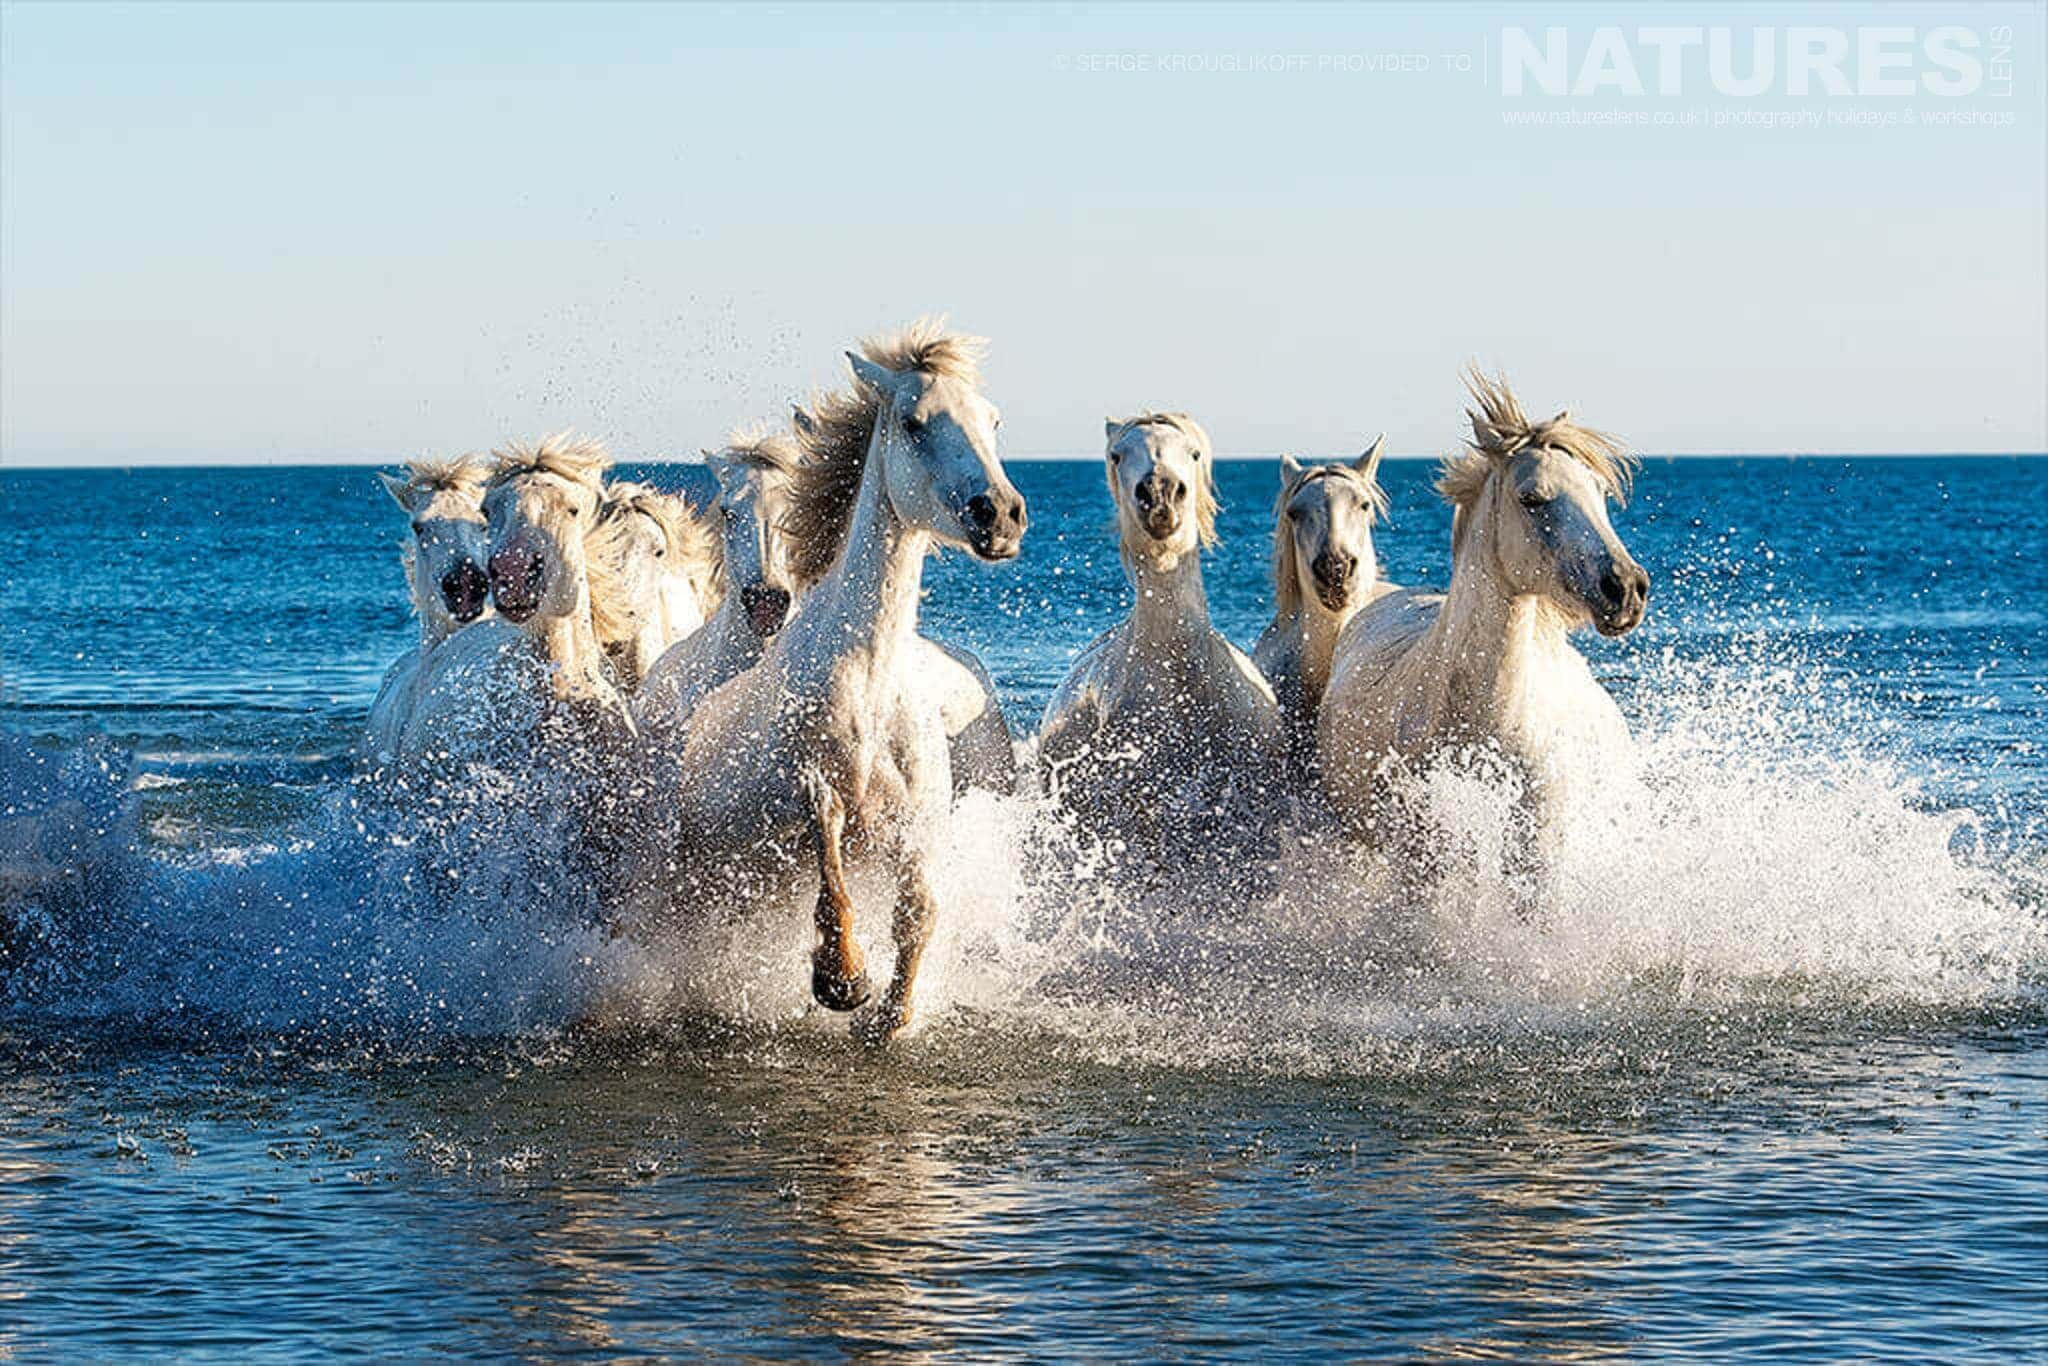 White horses of the camargue running through the surf typical of the type of image that may be captured during the NaturesLens Wild White Horses of the Camargue Photography Holiday